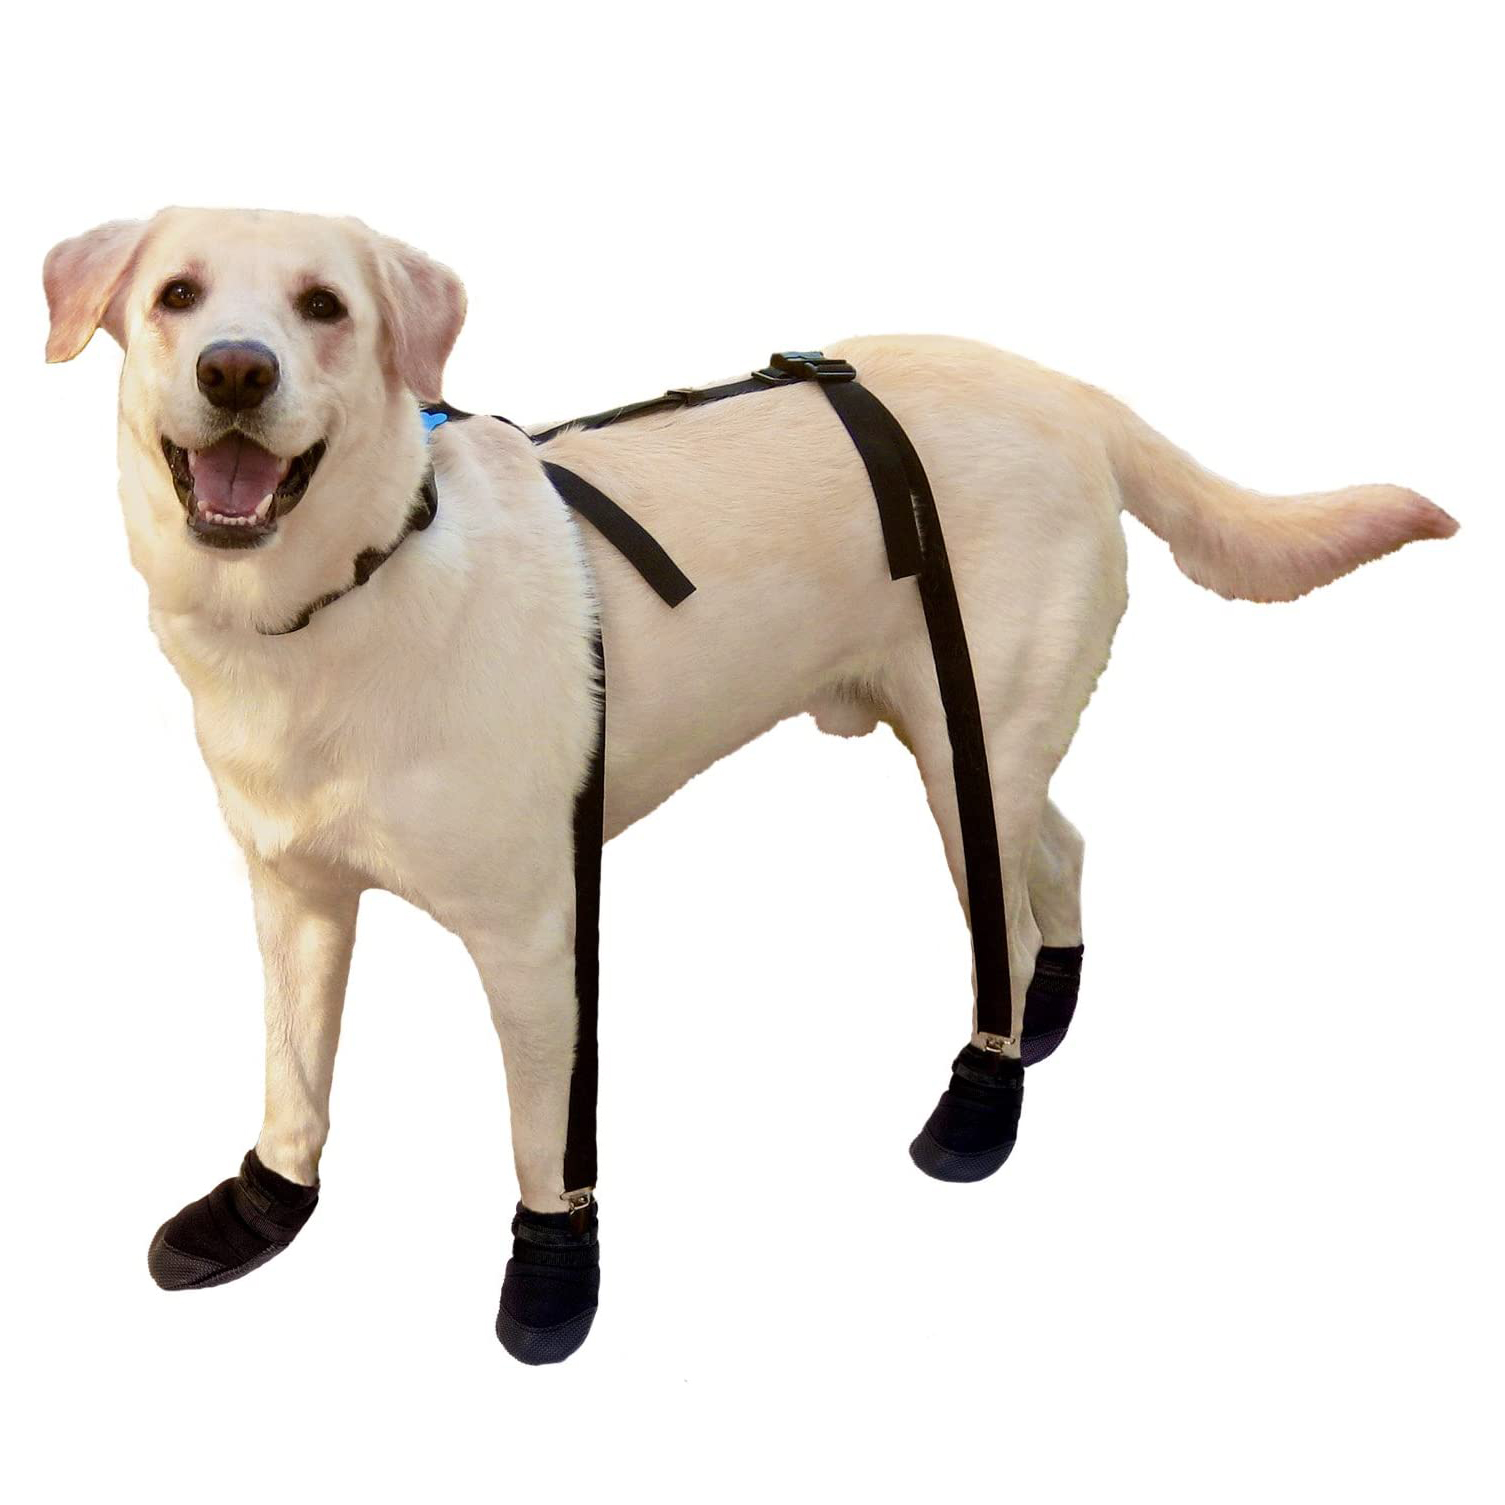 canine-footwear-suspenders-for-snug-boots